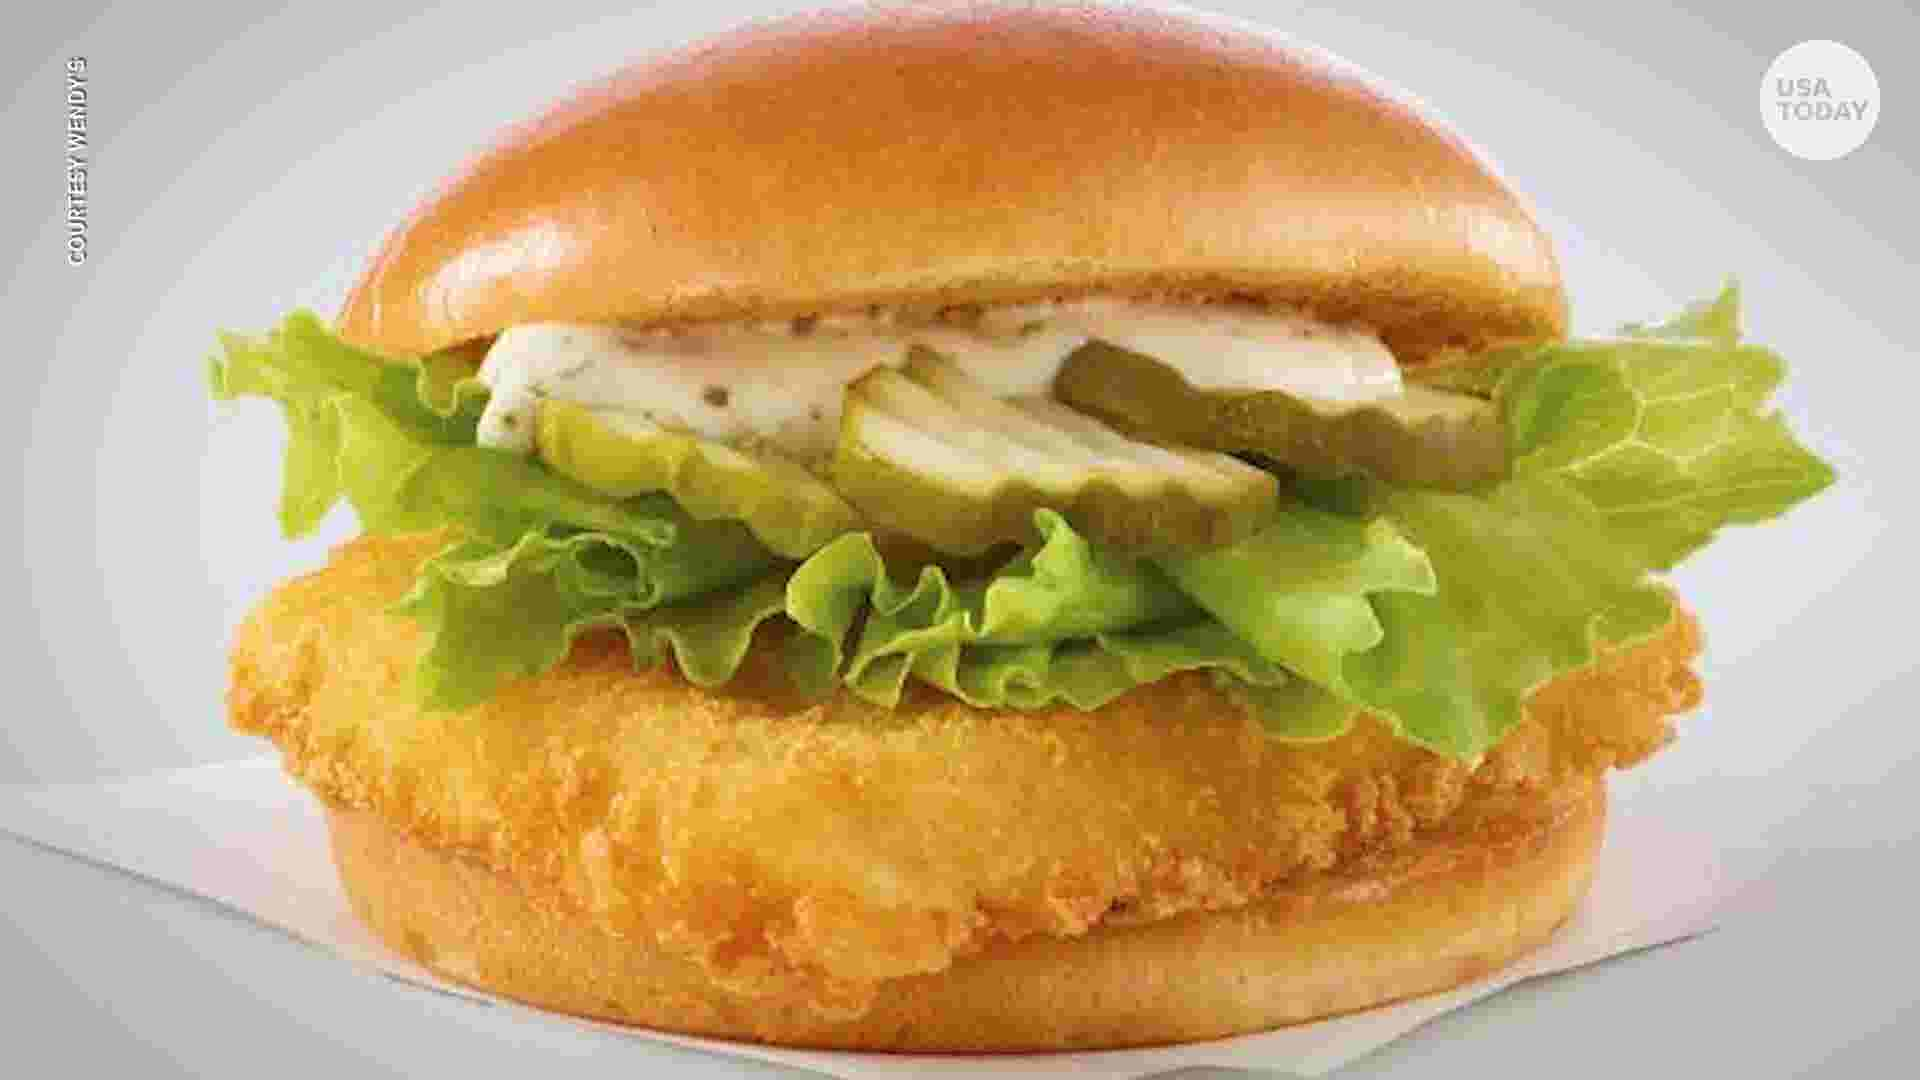 Lent is here, and fish is on the menu at these fast food joints